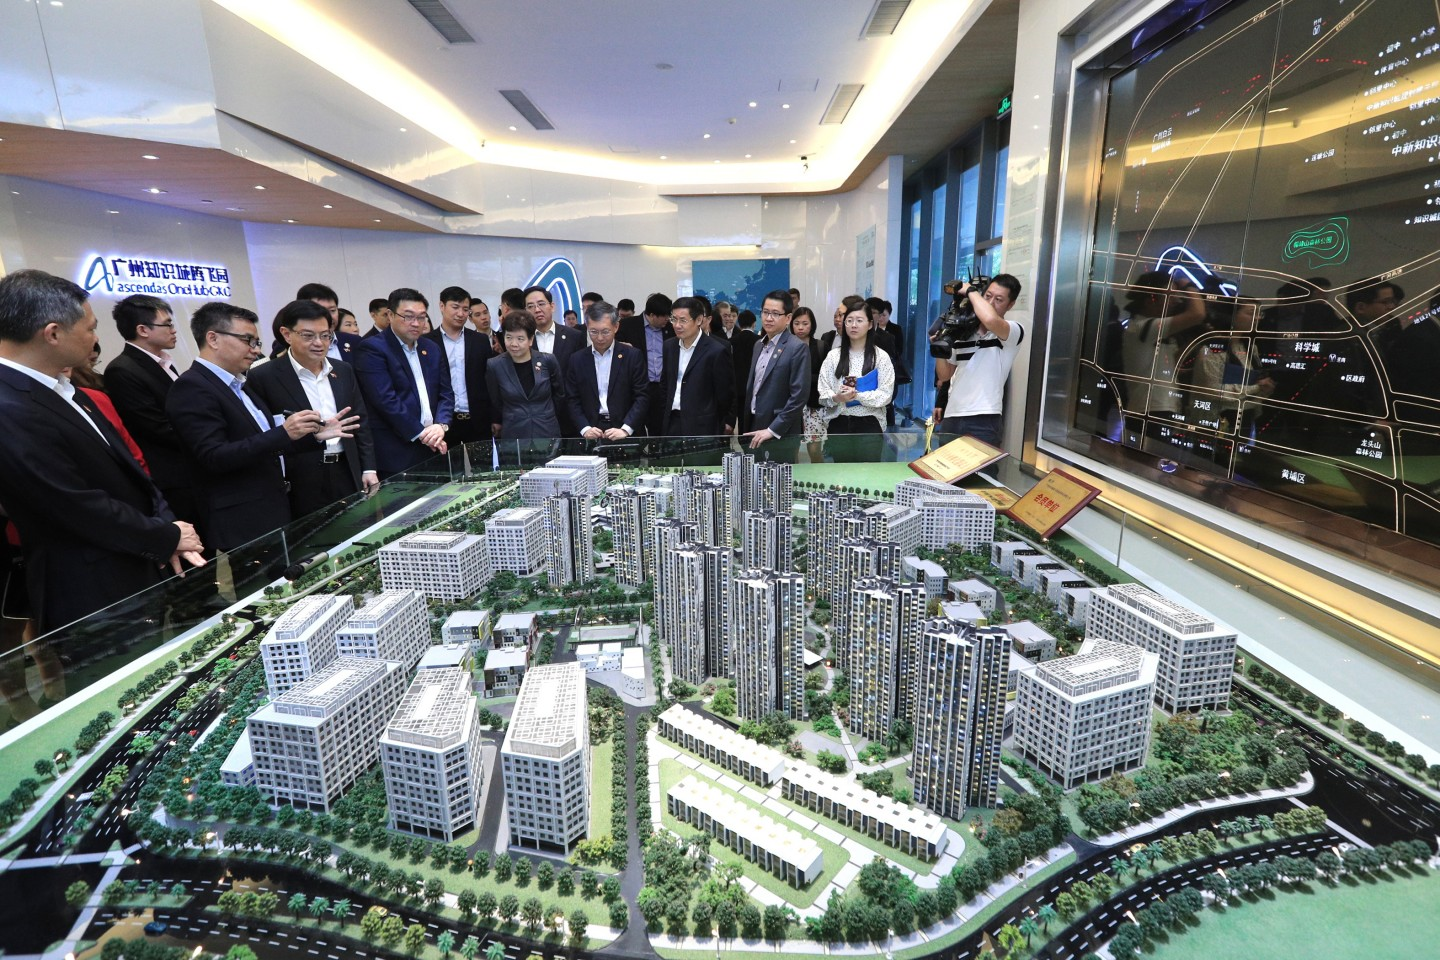 DPM Heng Swee Keat toured the Sino-Singapore Guangzhou Knowledge City, a township being jointly developed by Singapore and China just north of Guangzhou. Here, he is being given a briefing of the Ascendas OneHub Business Park in the township on Monday (May 27, 2019). (MCI)